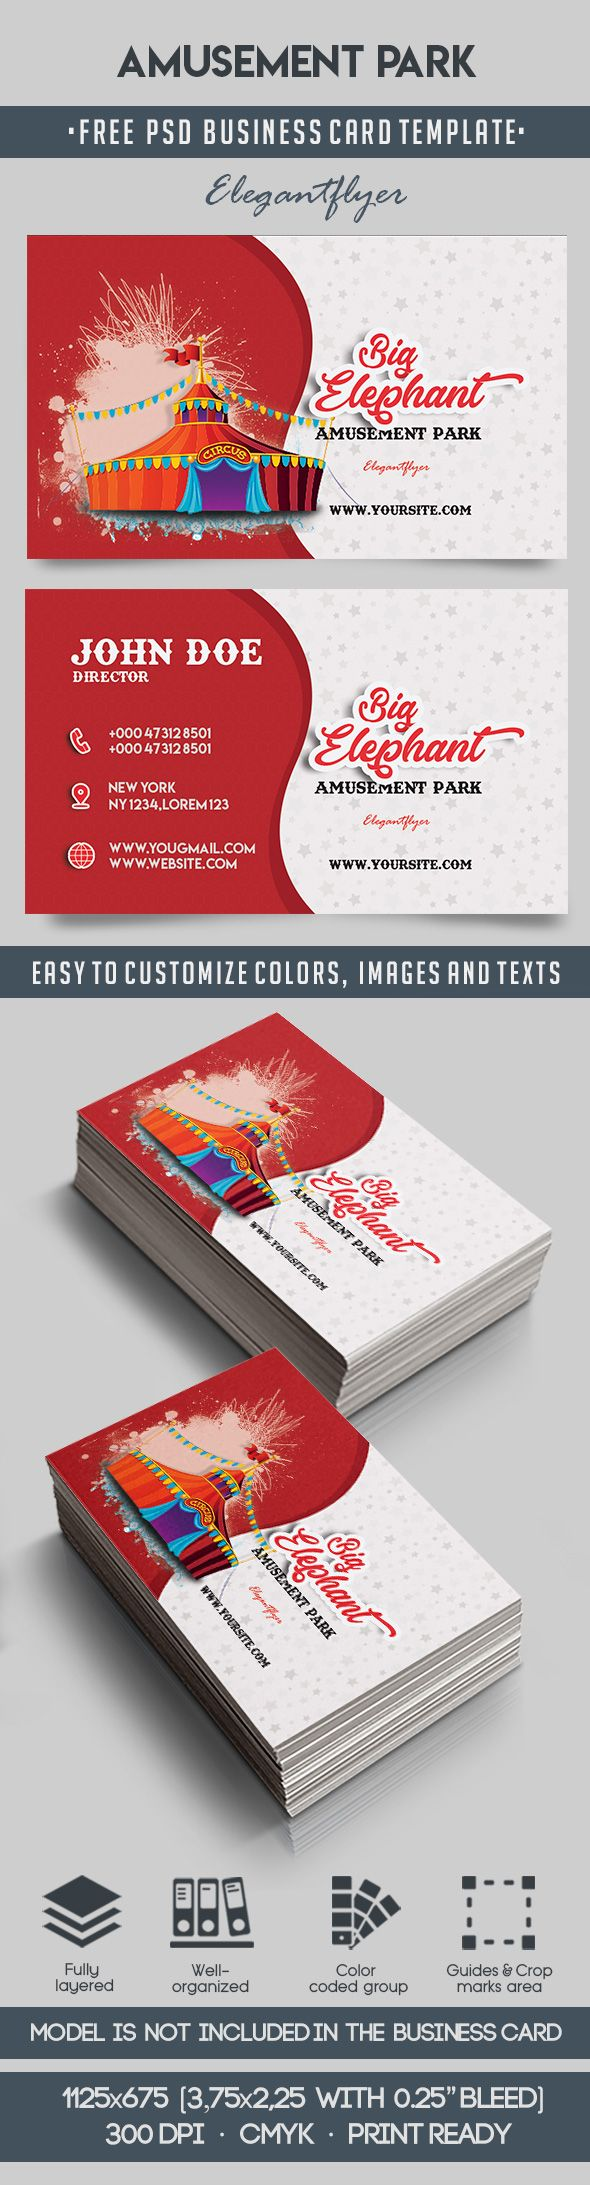 Amusement Park – Free Business Card Templates PSD